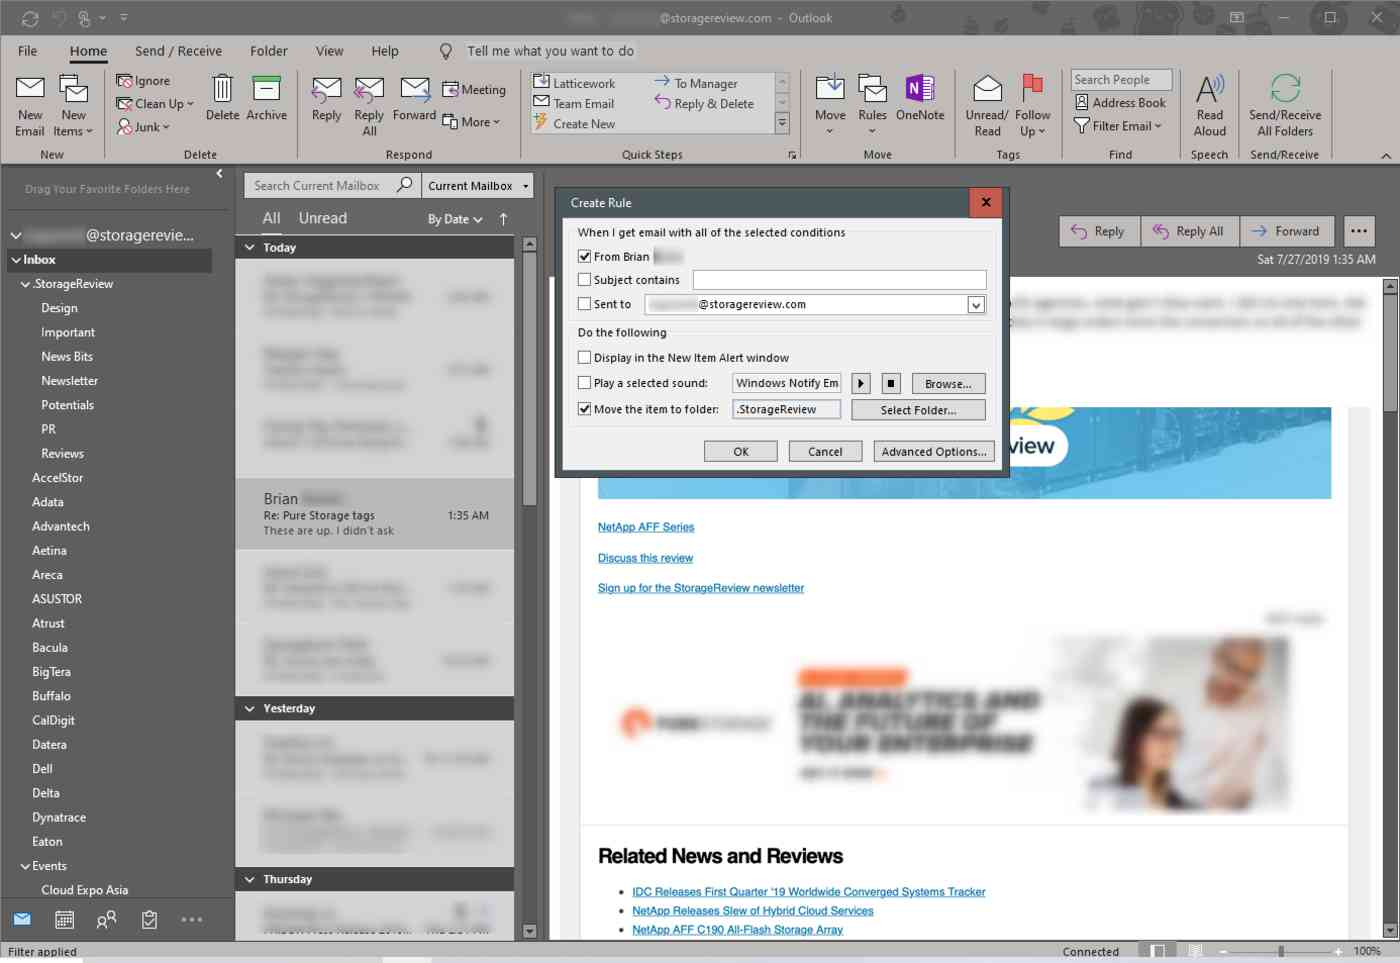 Outlook lets you create specific filtering rules for emails.